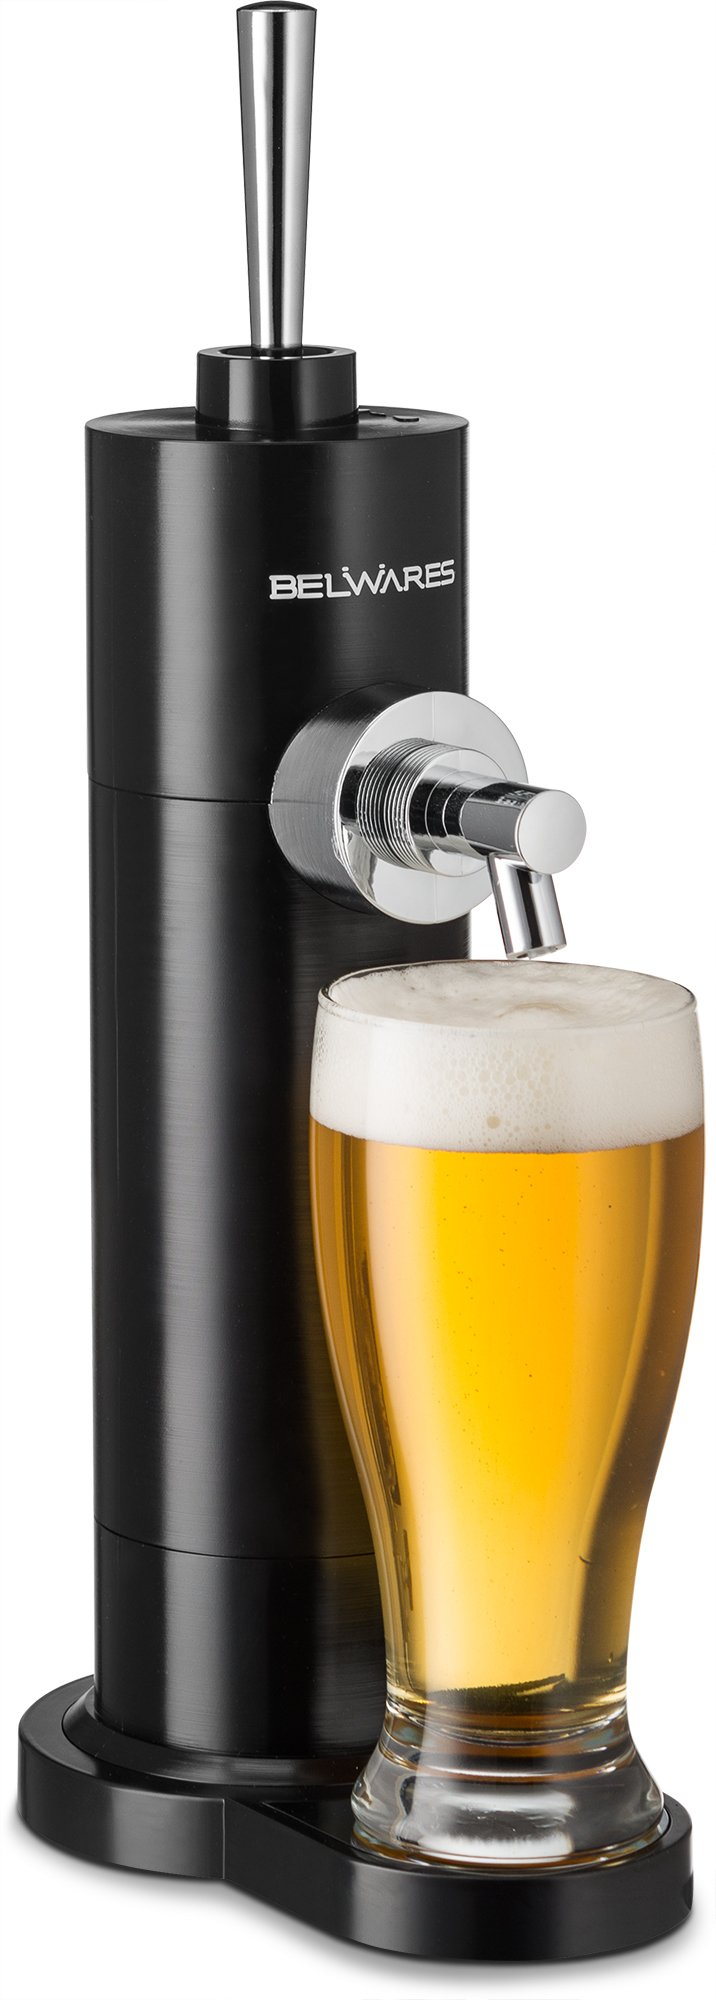 Portable Beer Dispenser, Beer Dispensing Equipment System for One Can to Draft a Good Pint, Works Perfect for all cans not taller than 550ml, Great Gift Idea